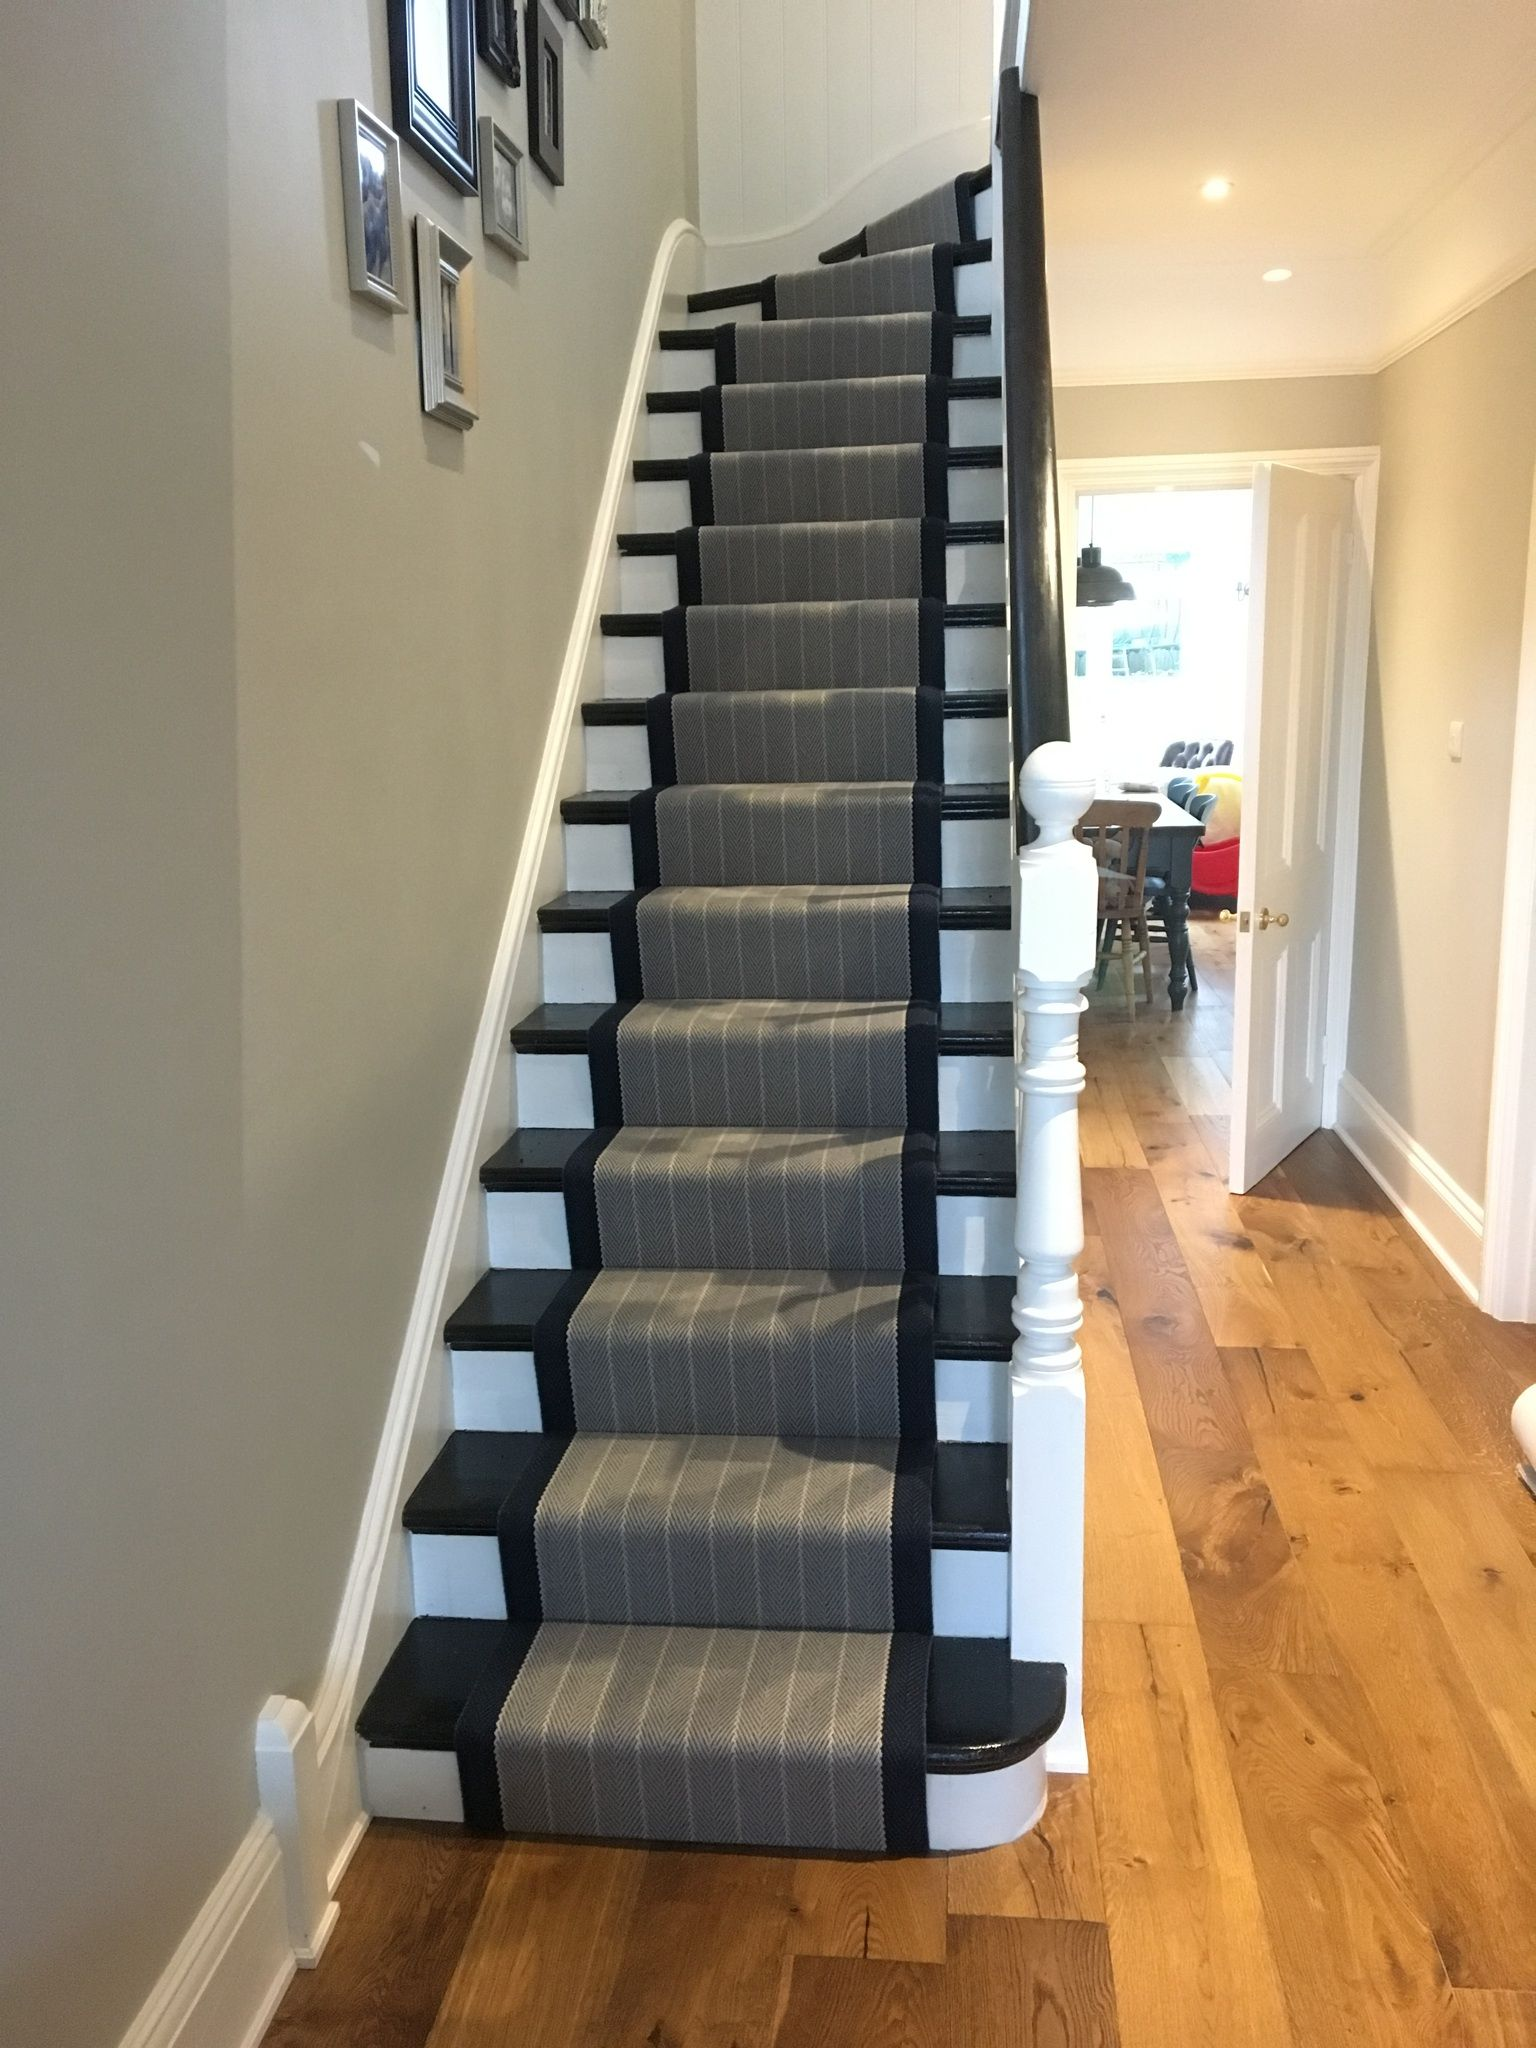 Roger Oates Runner Fitted To Hall Way Stairs And Landing By Ben Champness For Higherground Camberley Higherground Co Uk Stairs Home Home Decor